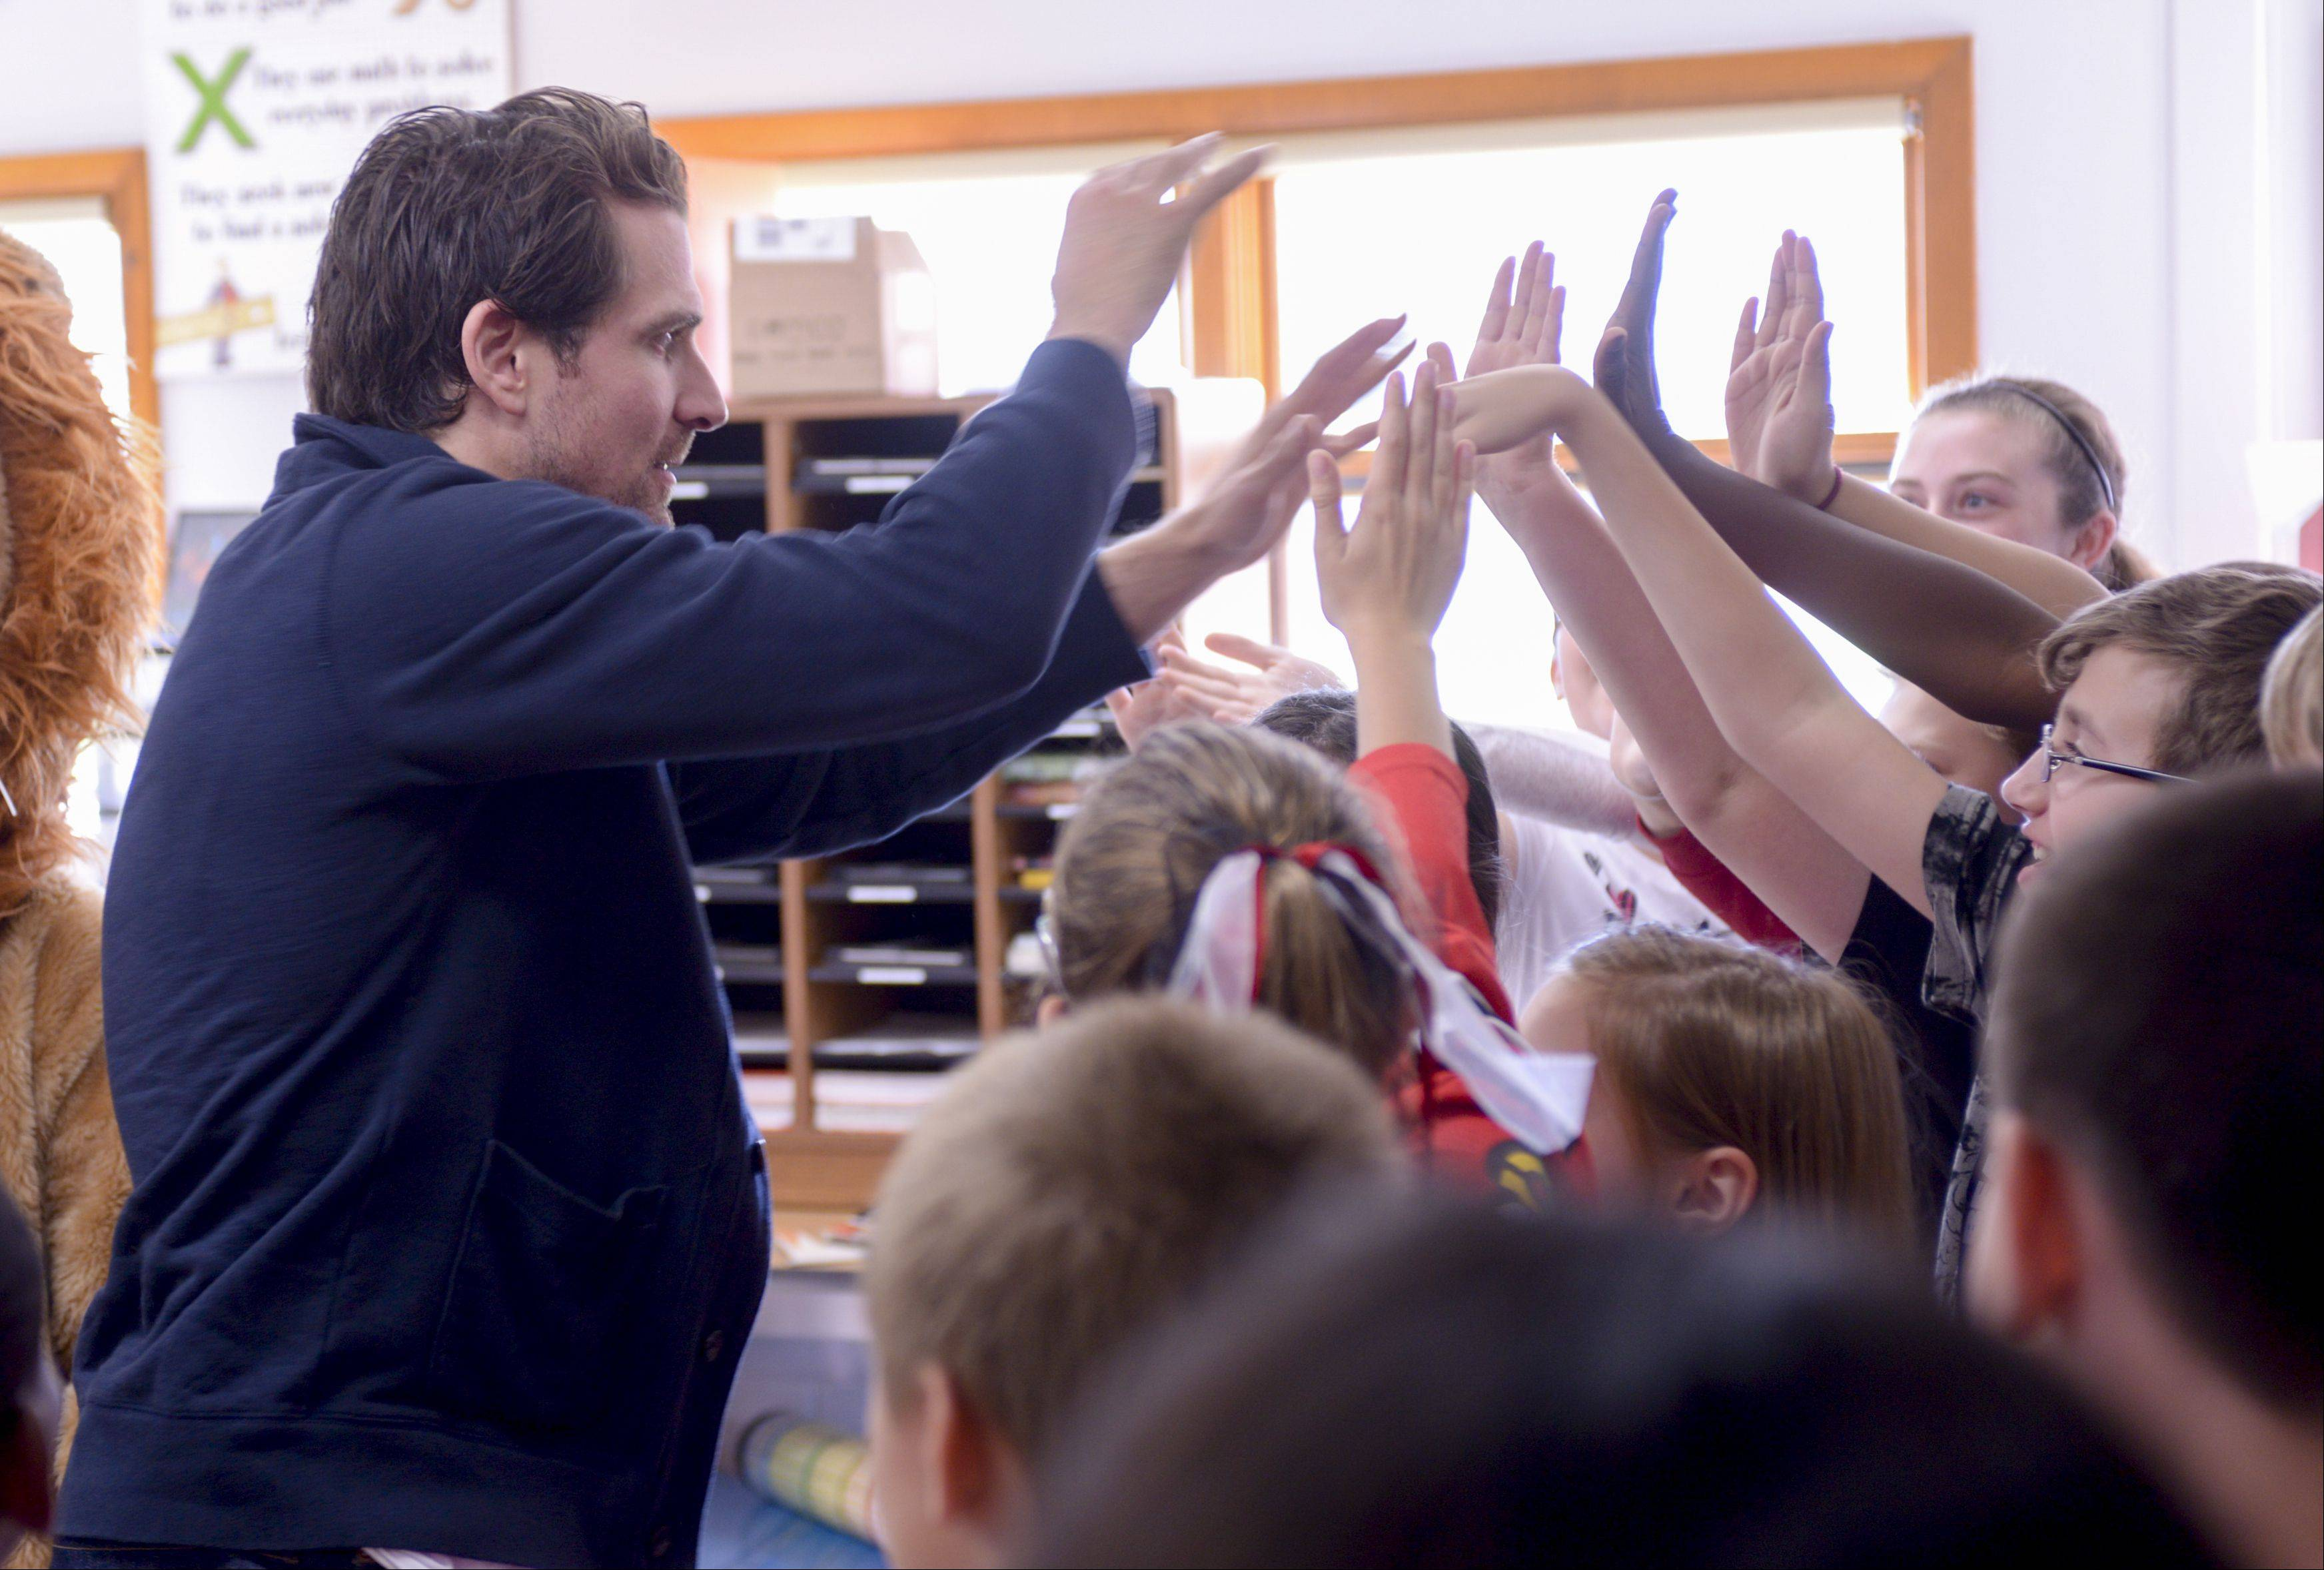 Chicago Blackhawks left wing Patrick Sharp visited every classroom at Lisle Junior High School Monday to reward students for their generosity during Goodwill�s Pass It On Donation Challenge.